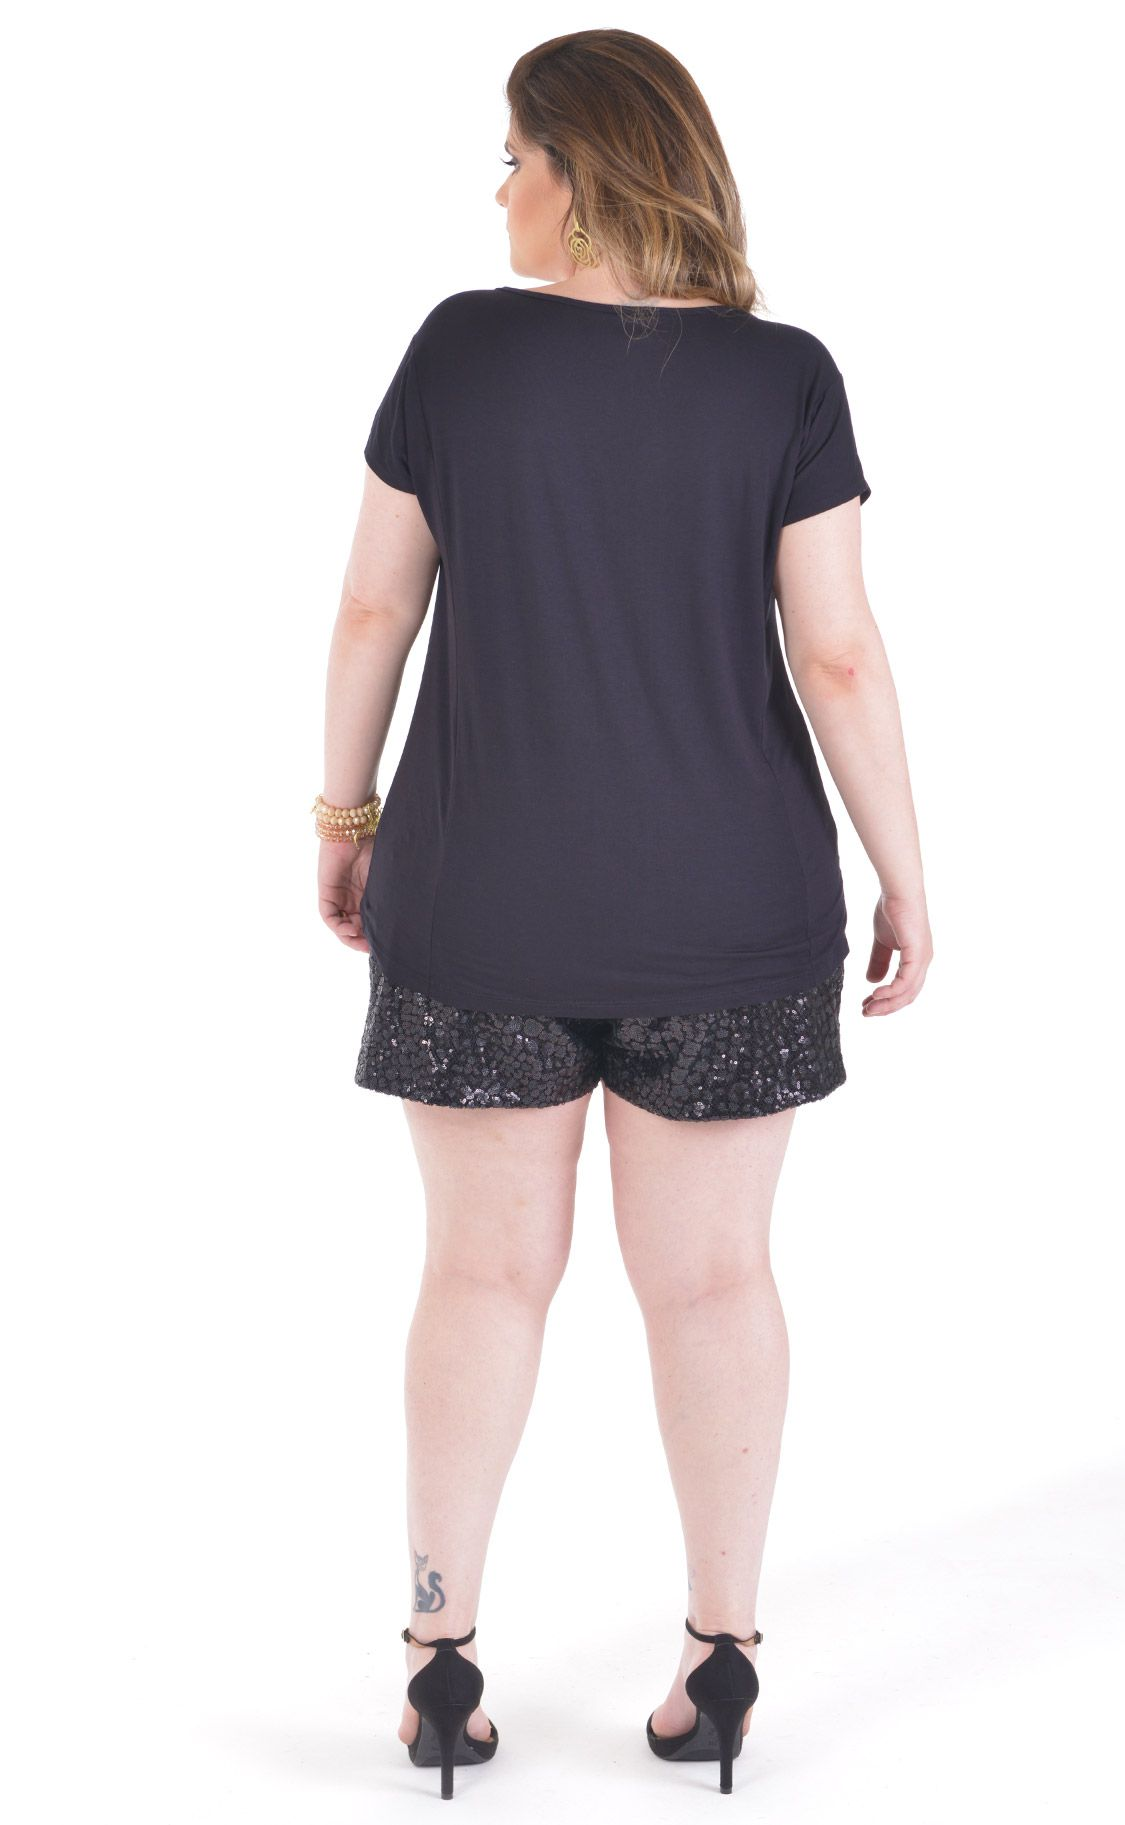 Camiseta Plus Size L'Amour